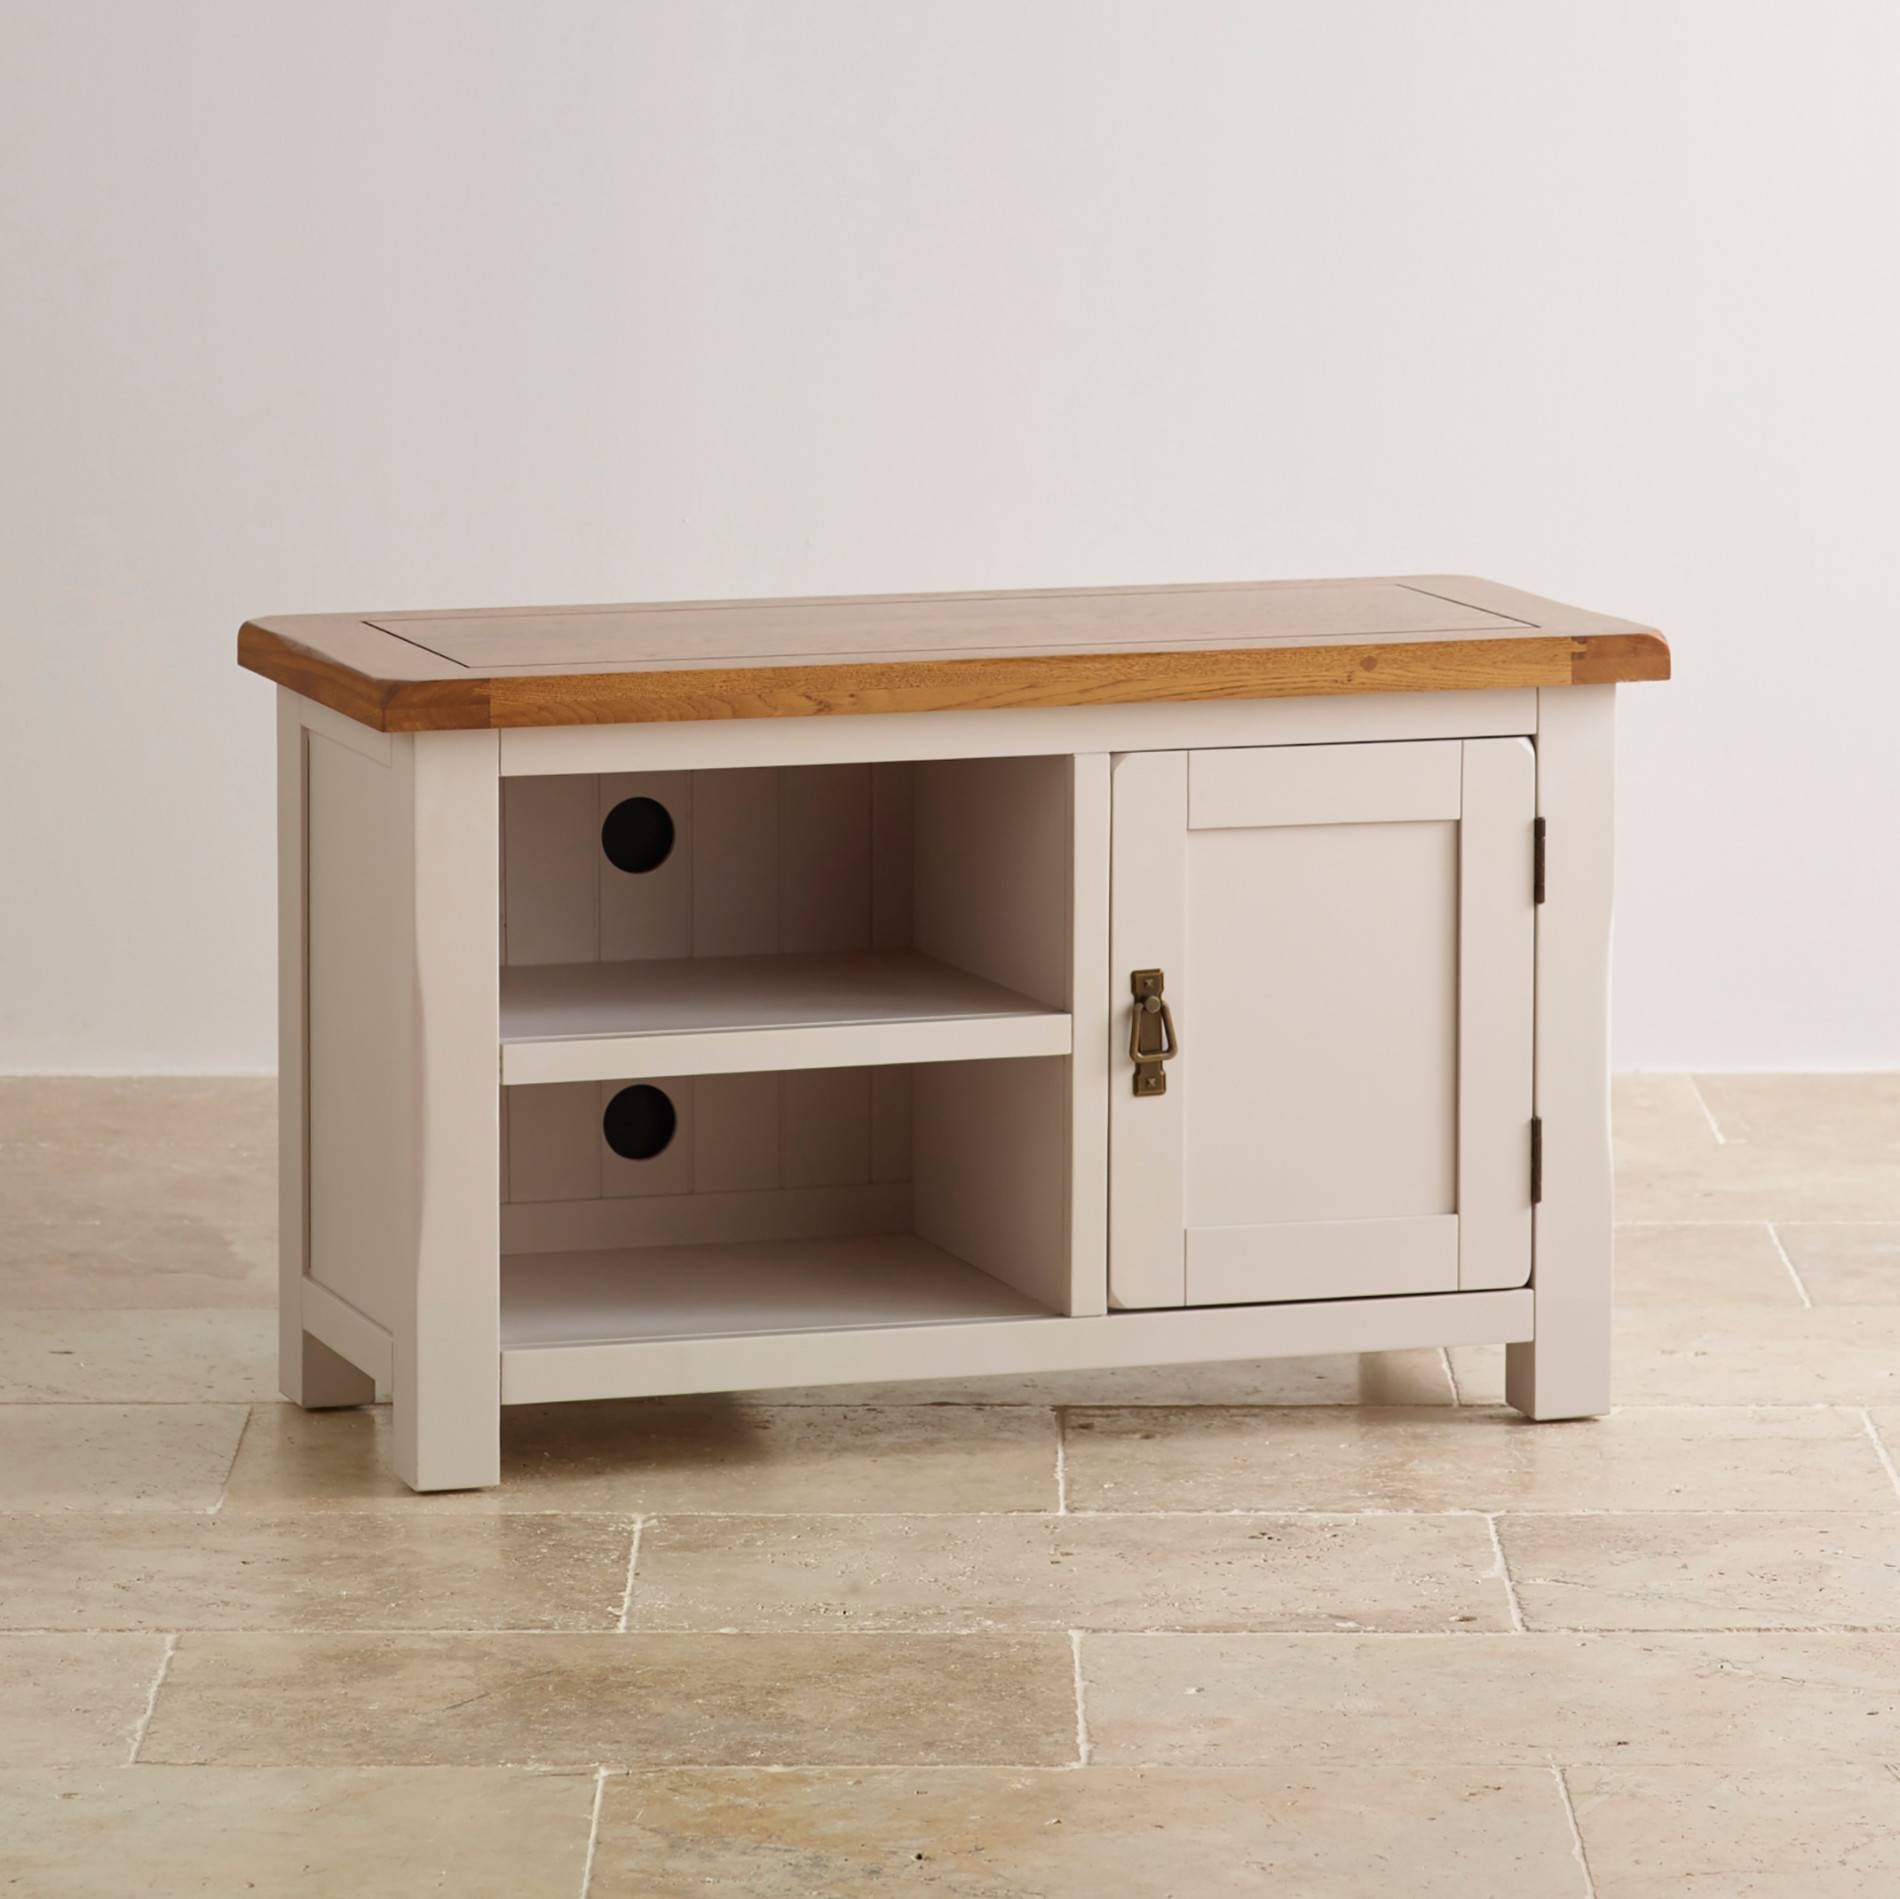 Kemble Tv Cabinet In Painted Solid Oak | Oak Furniture Land with regard to White Painted Tv Cabinets (Image 10 of 15)